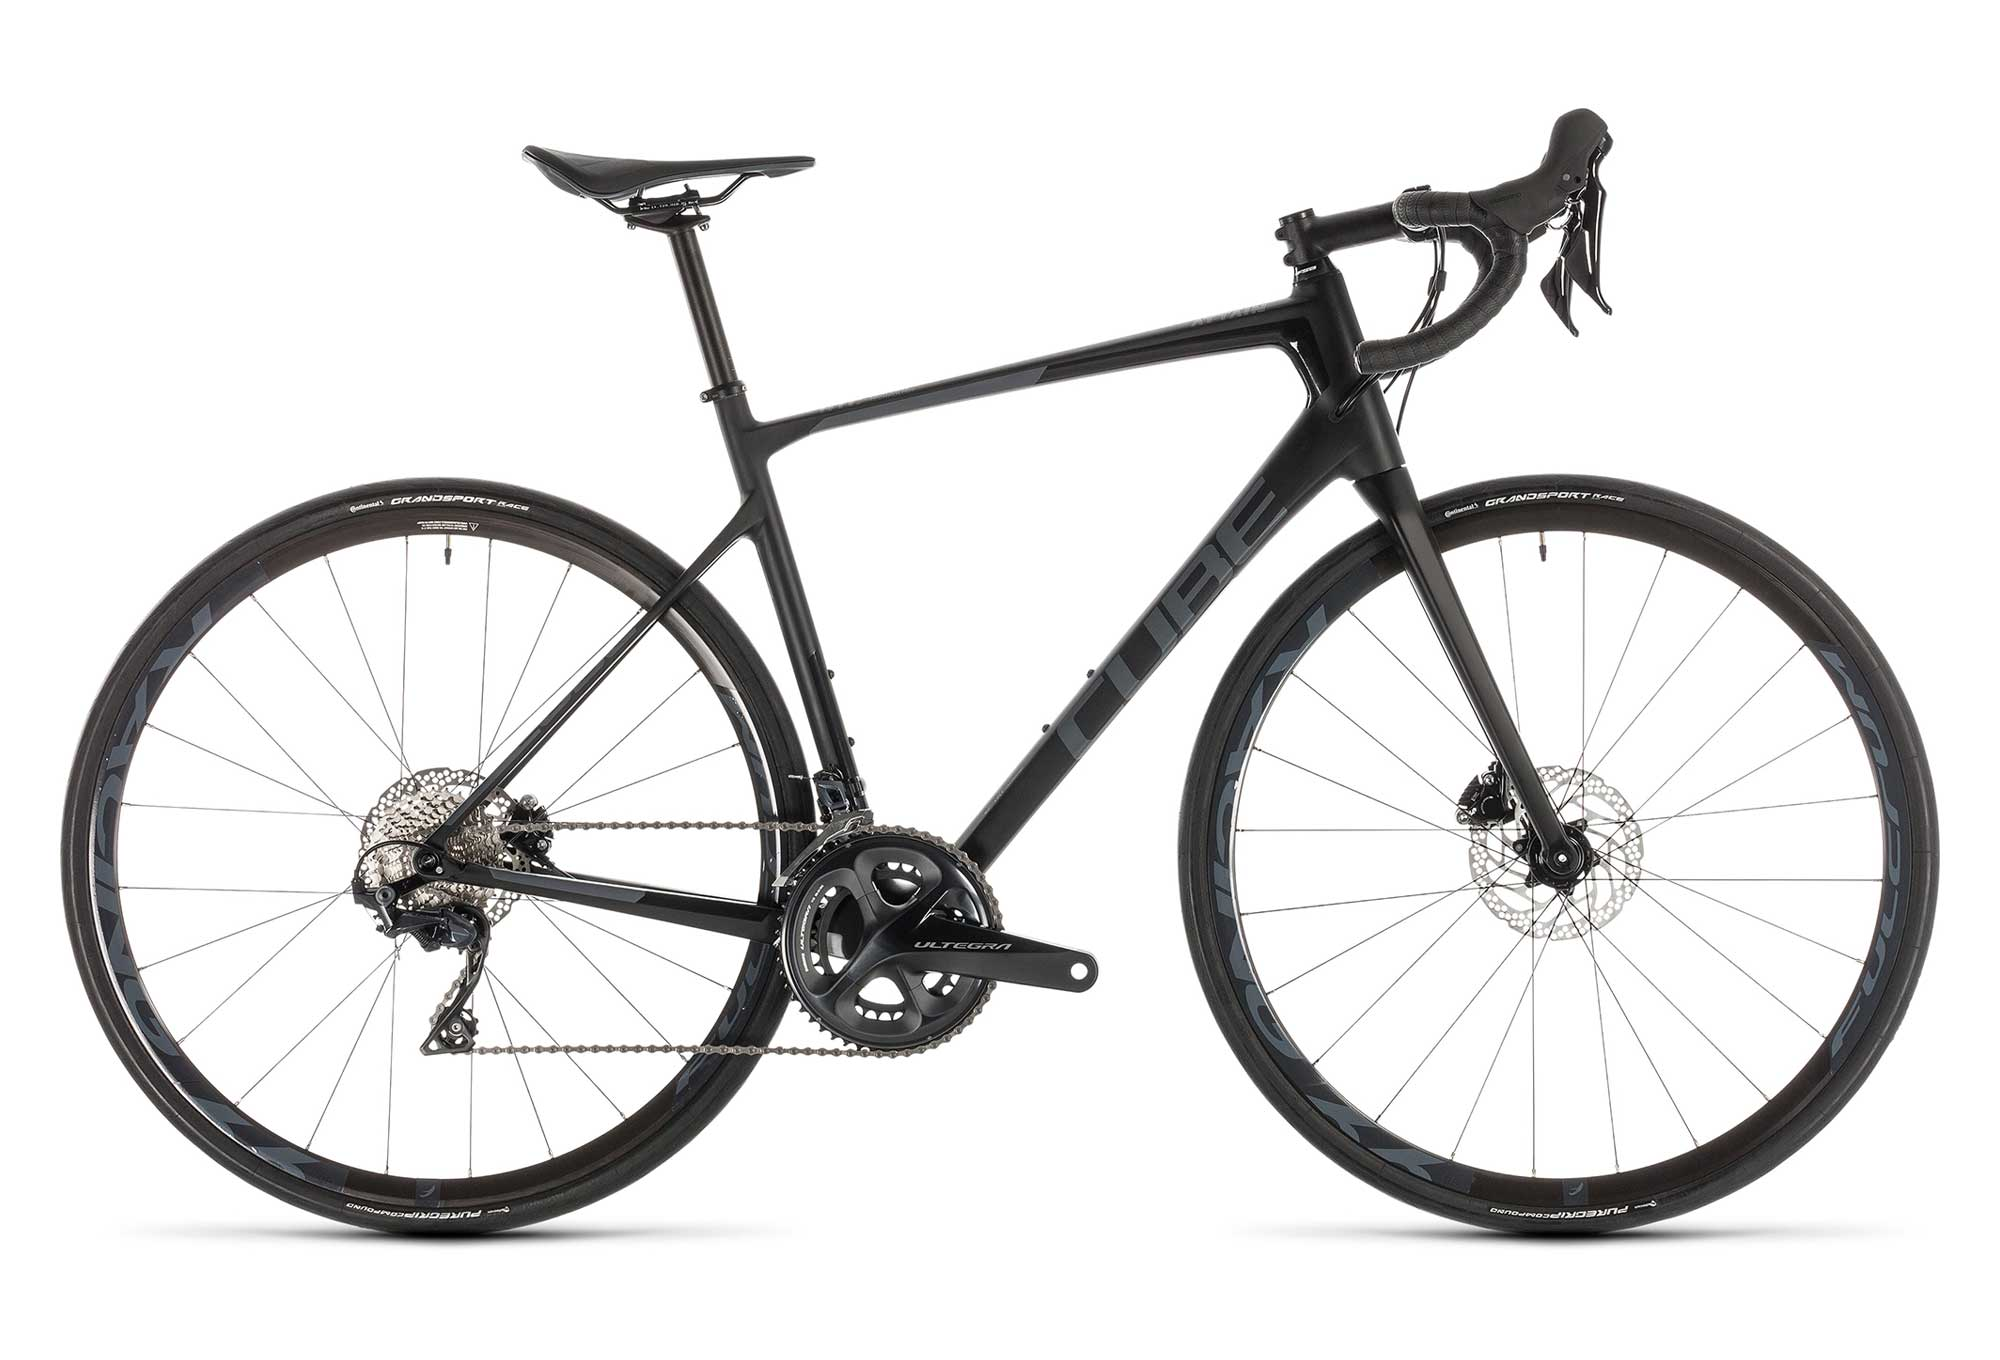 3de61bbec3c Cube Attain GTC SL Disc Road Bike 2019 Shimano Ultegra 11S Black |  Alltricks.com